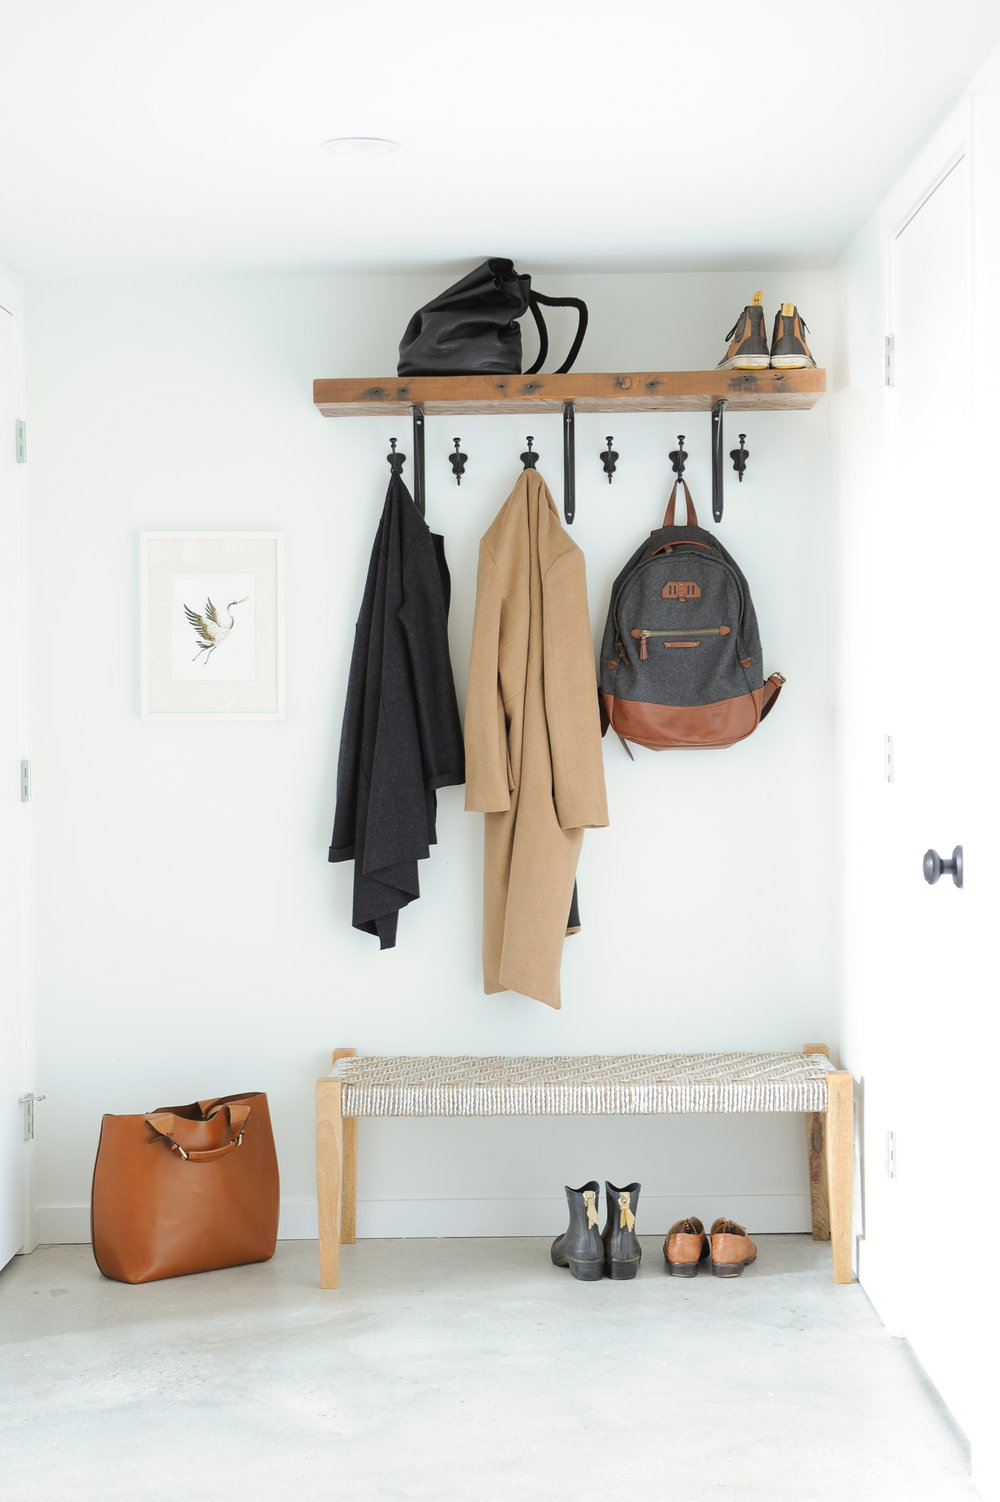 An entrance space that is brightly lit and has a wooden shelf and black hooks with trendy clothes and bags hanging up and shoes under a bench.